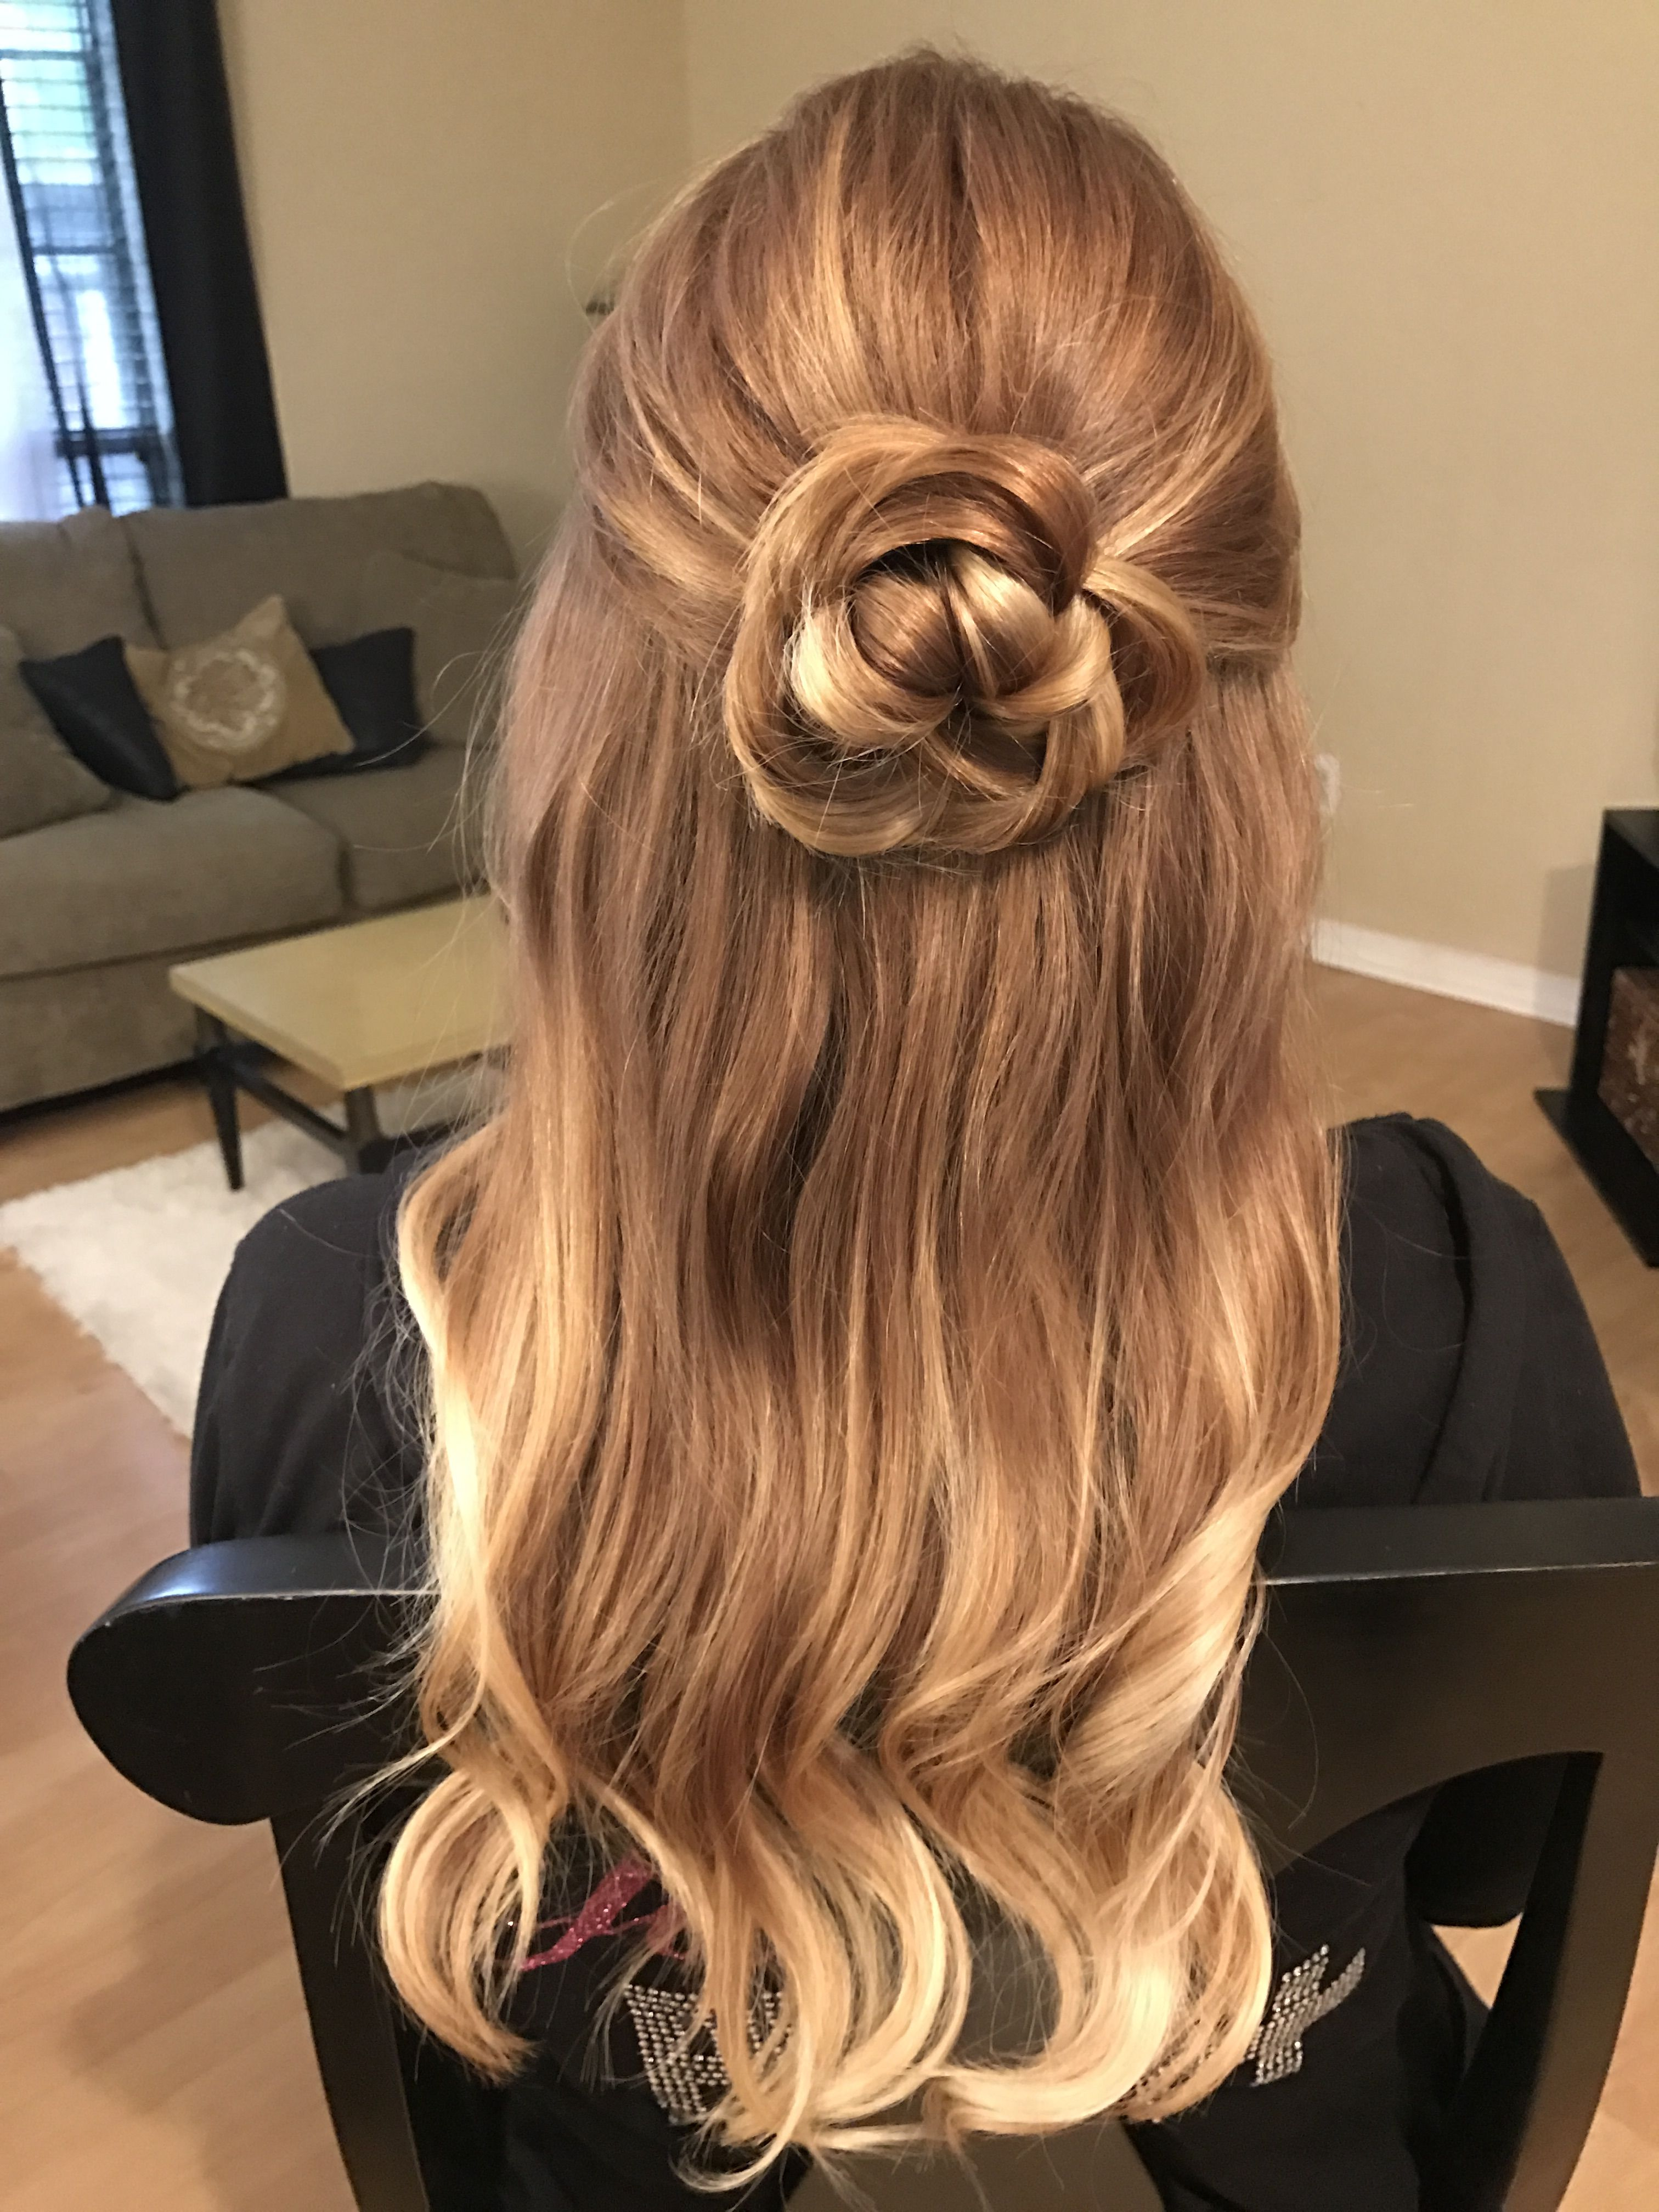 Rose flower hair updo half up half down hairstyle for prom bride or